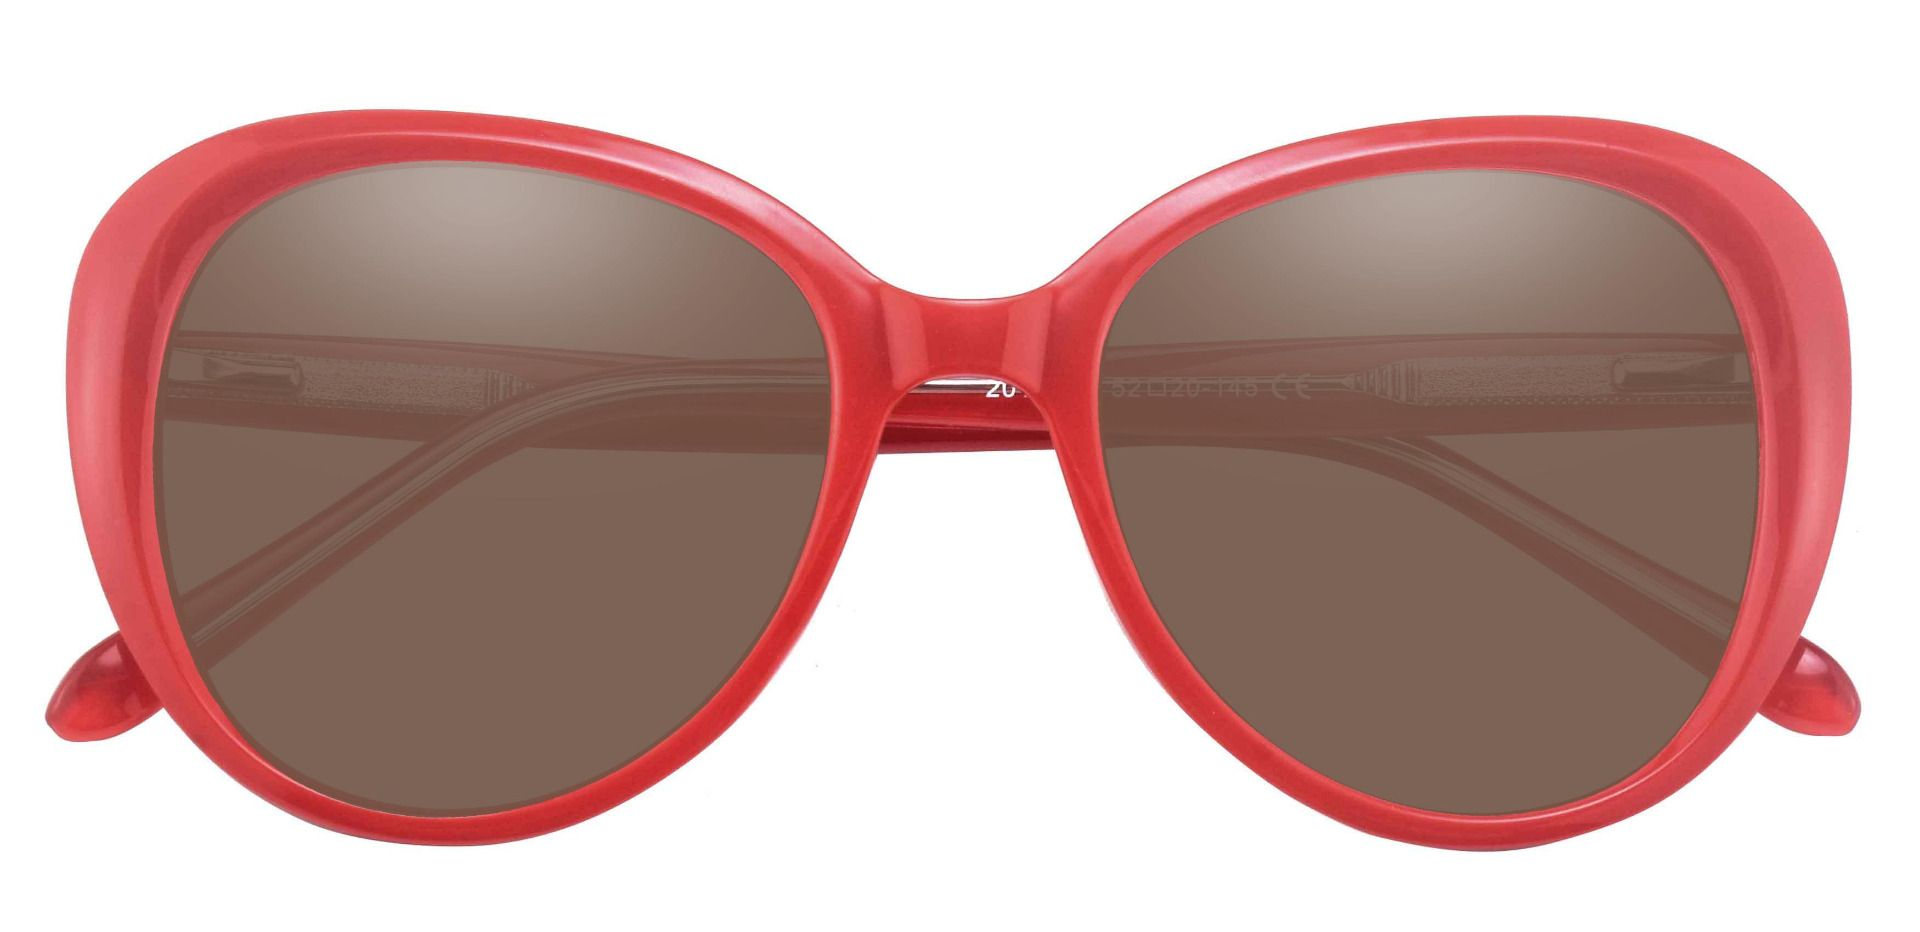 Sheridan Oval Progressive Sunglasses - Red Frame With Brown Lenses